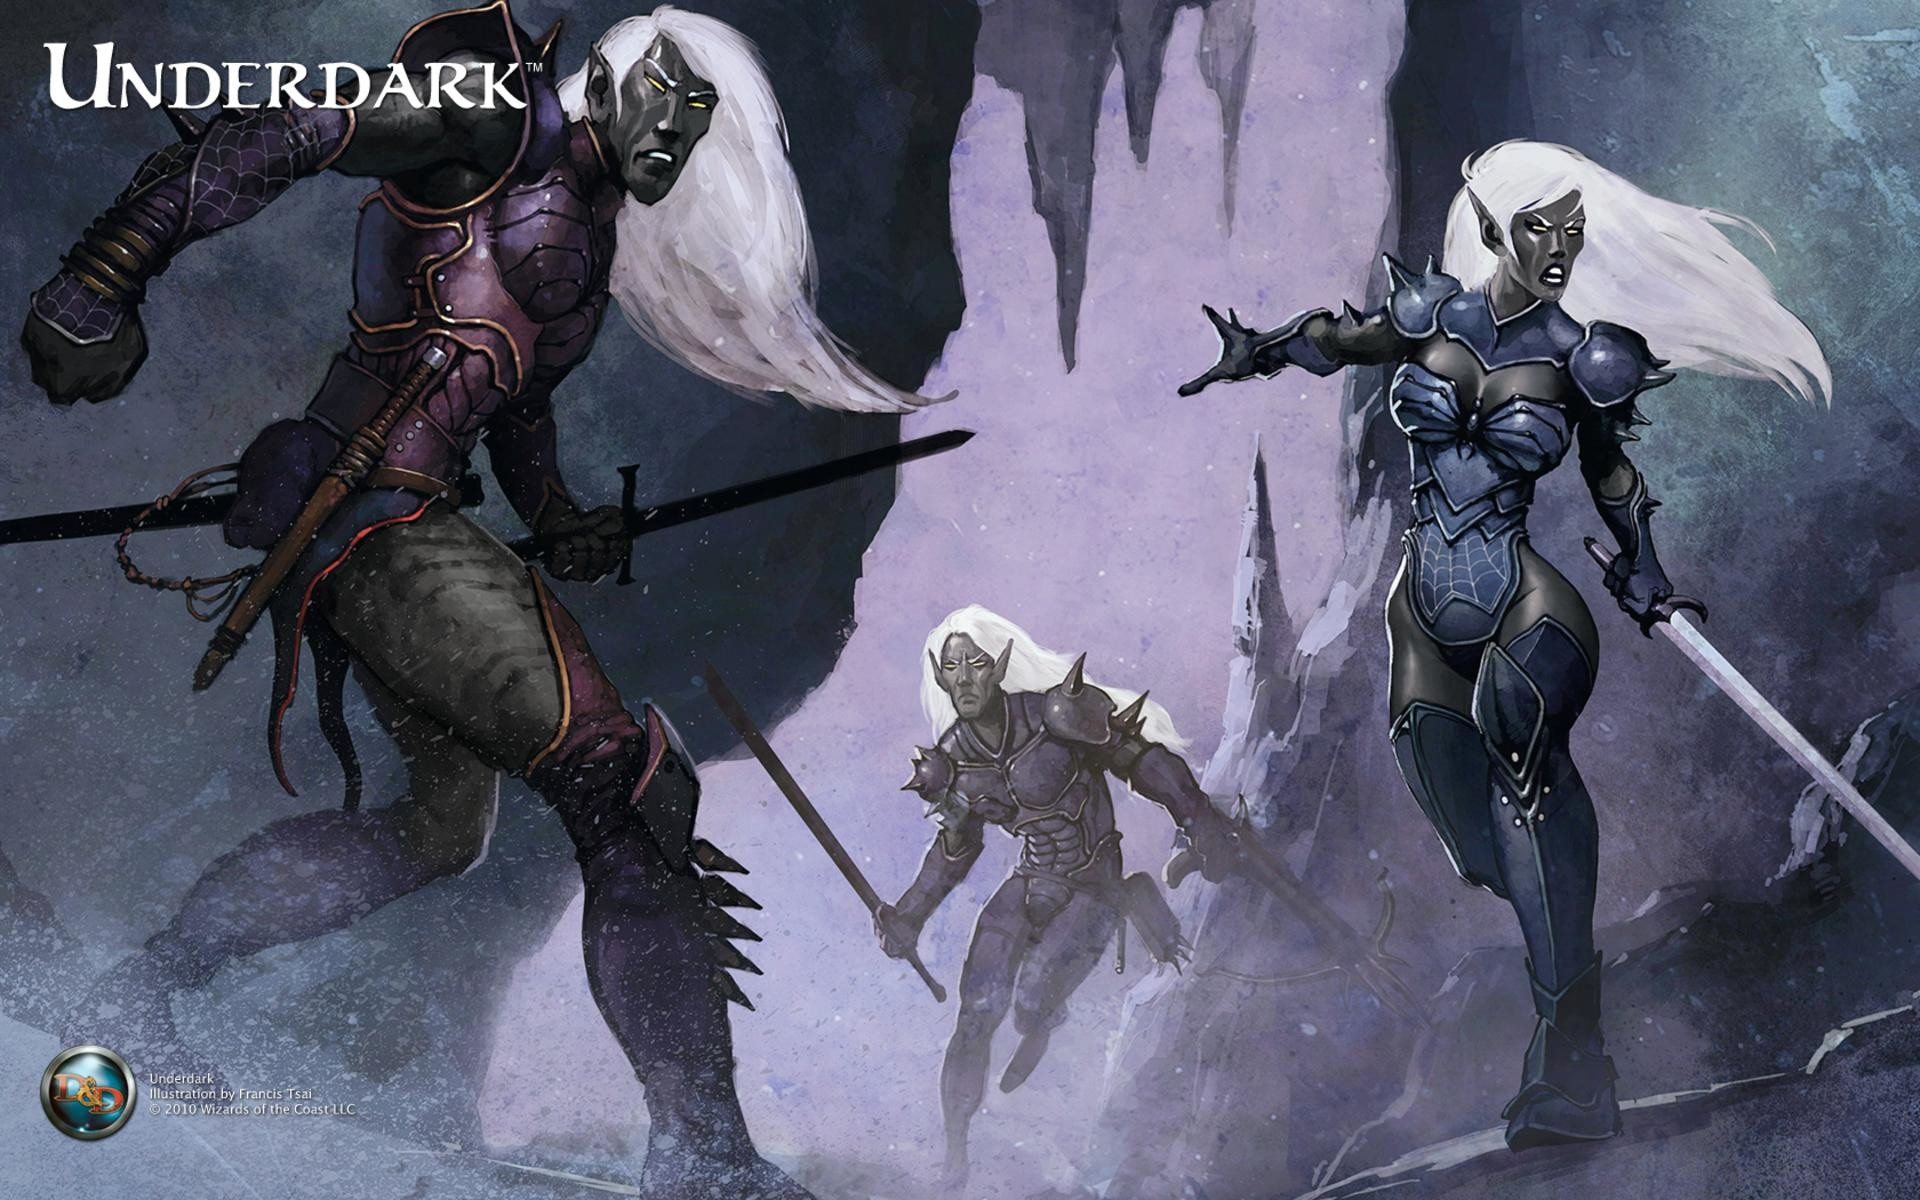 https://pic1.win4000.com/wallpaper/0/510a035a5c6f6.jpg | Dungeons & Dragons  | Pinterest | Dark elf, Fantasy characters and RPG